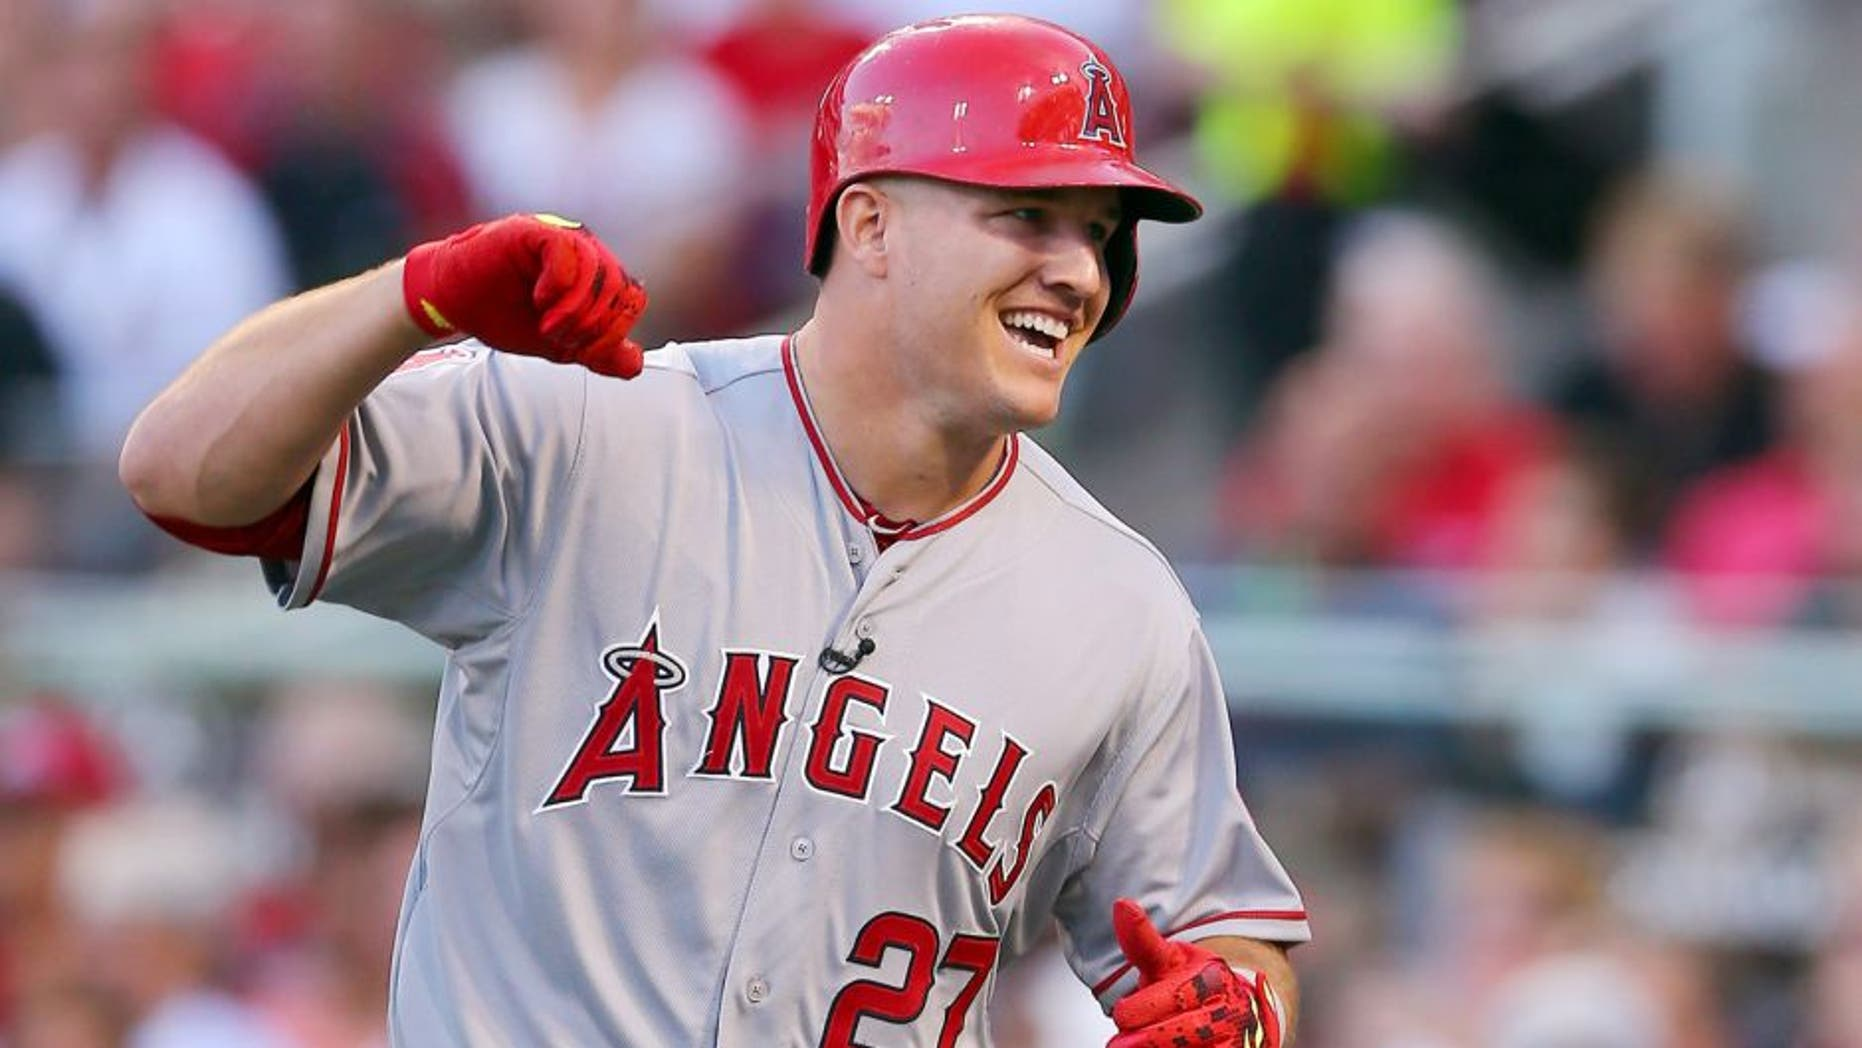 American League All-Star Mike Trout #27 of the Los Angeles Angels of Anaheim celebrates after hitting a lead off home run in the first inning against National League All-Star Zack Greinke #21 of the Los Angeles Dodgers during the 86th MLB All-Star Game at the Great American Ball Park on July 14, 2015 in Cincinnati, Ohio. (Photo by Elsa/Getty Images)